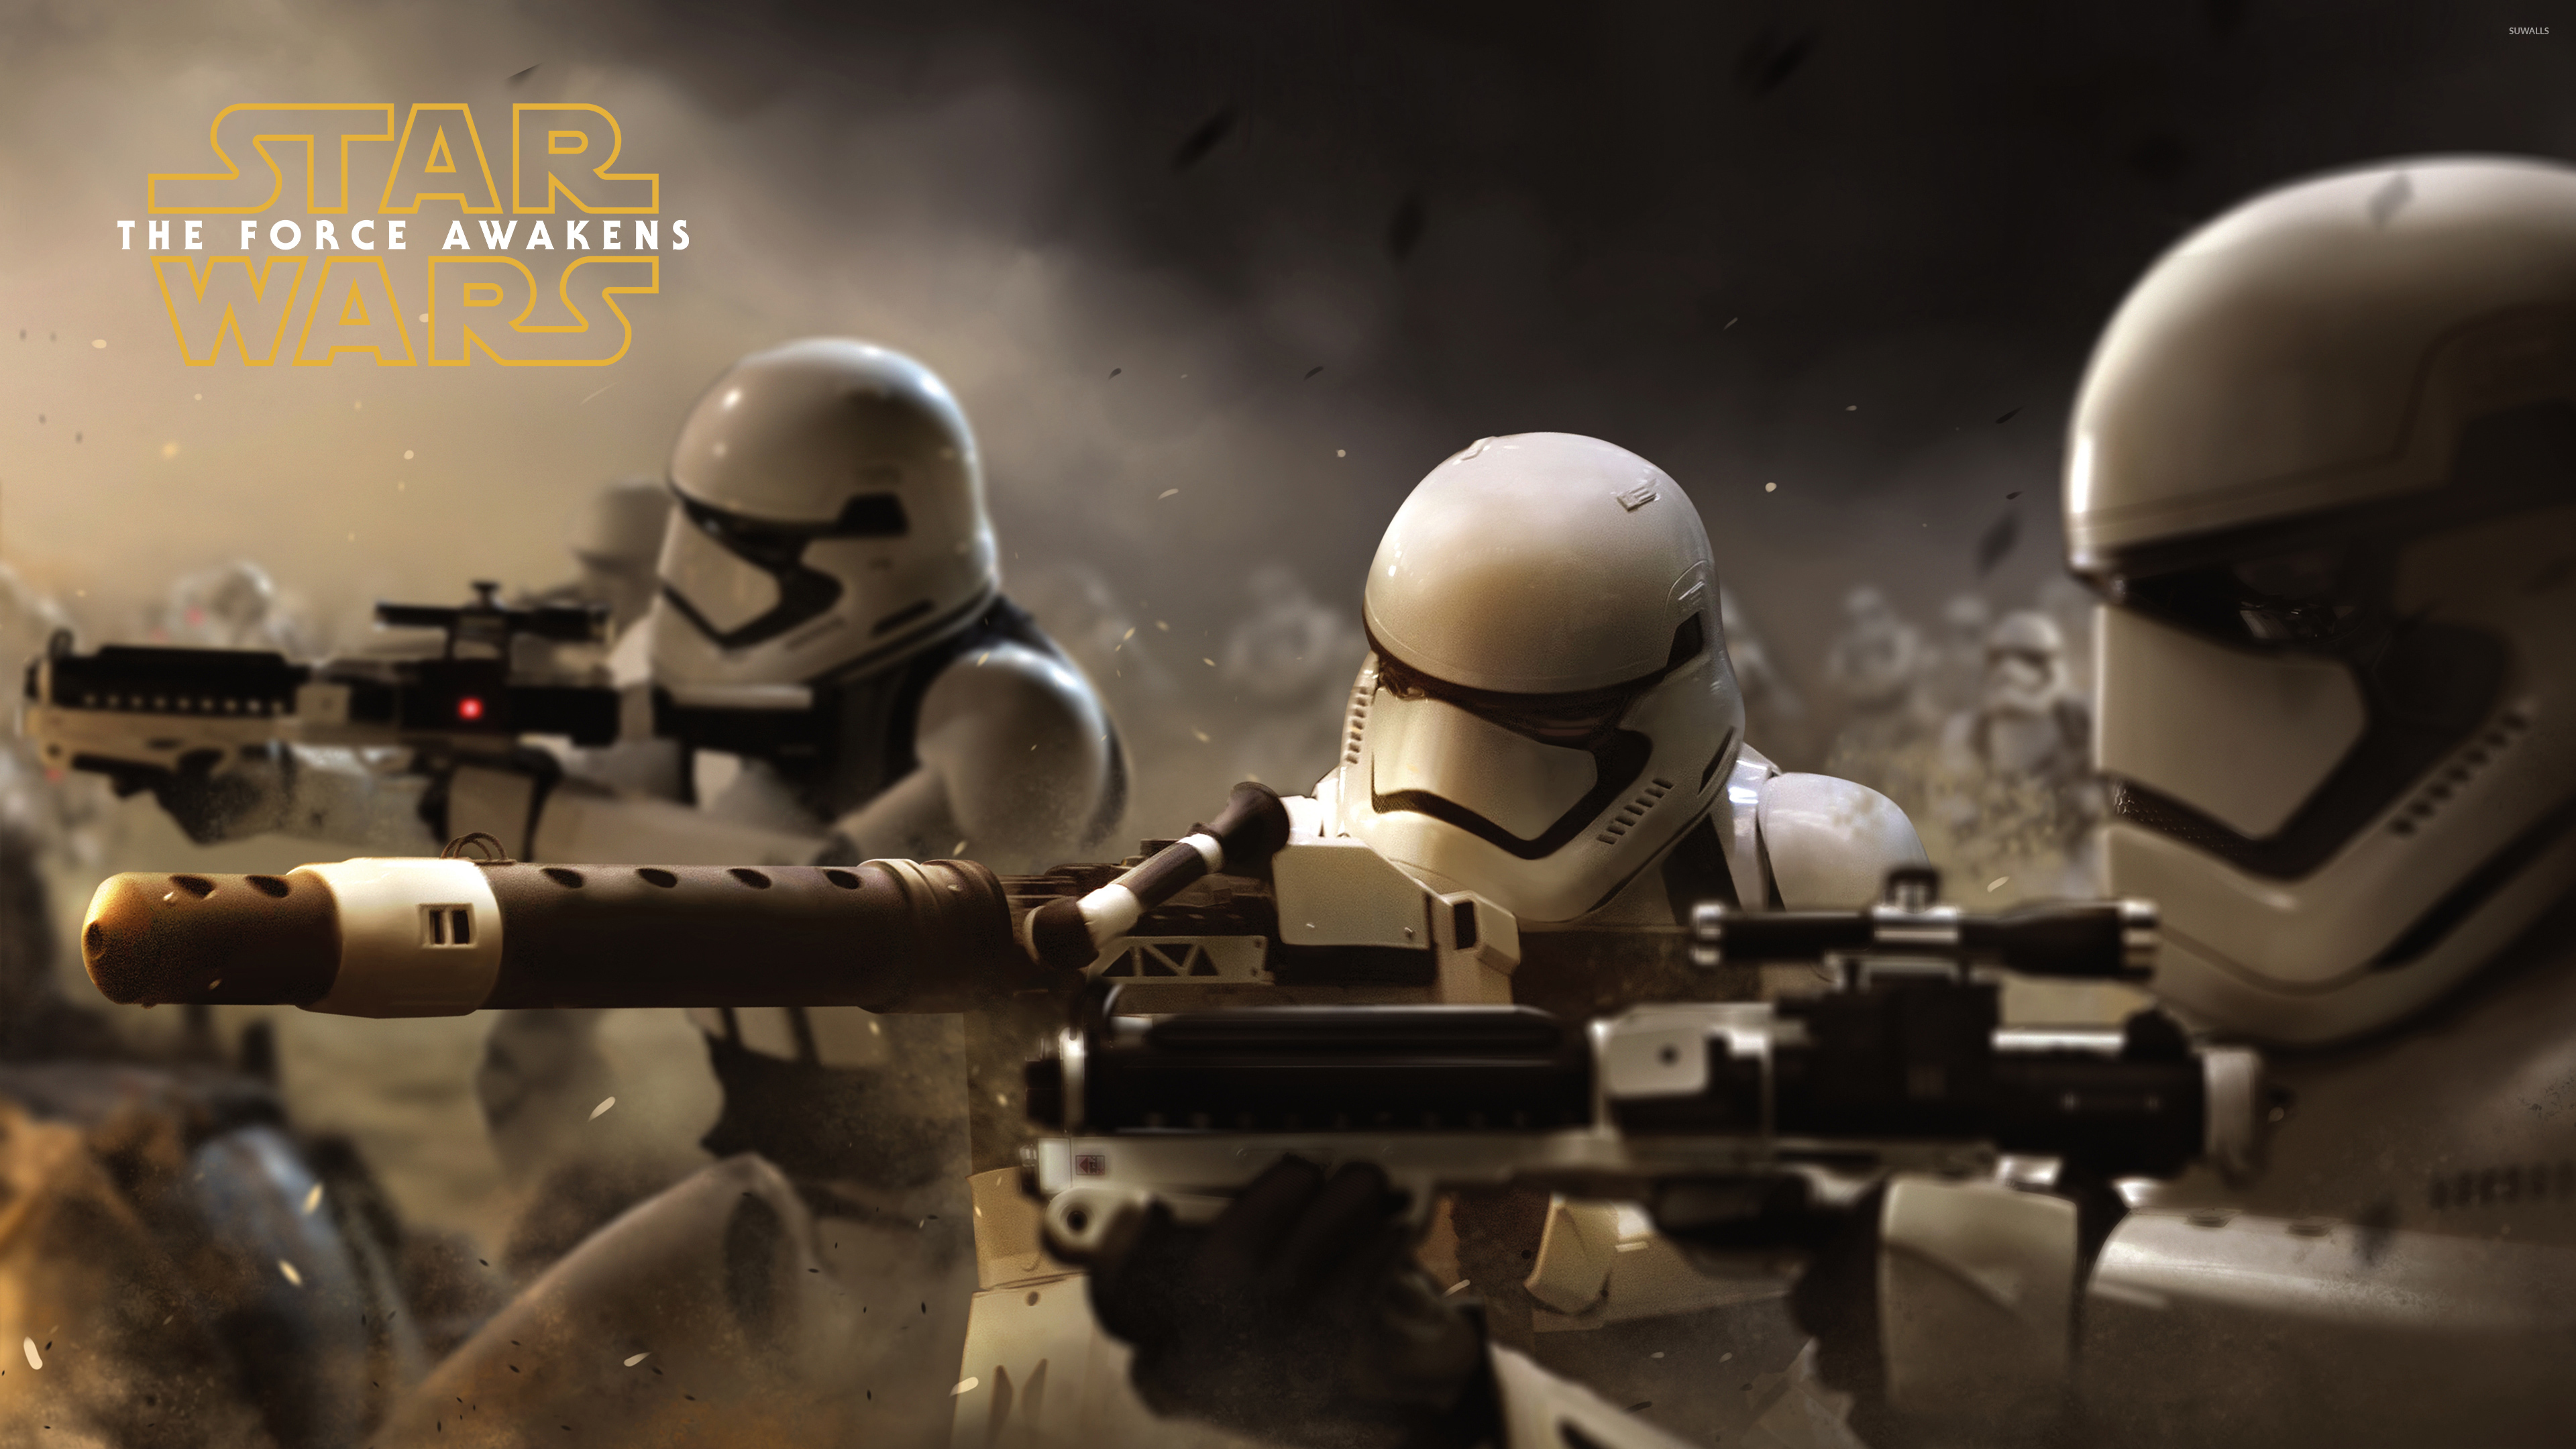 Stormtroopers In Star Wars The Force Awakens Wallpaper Movie